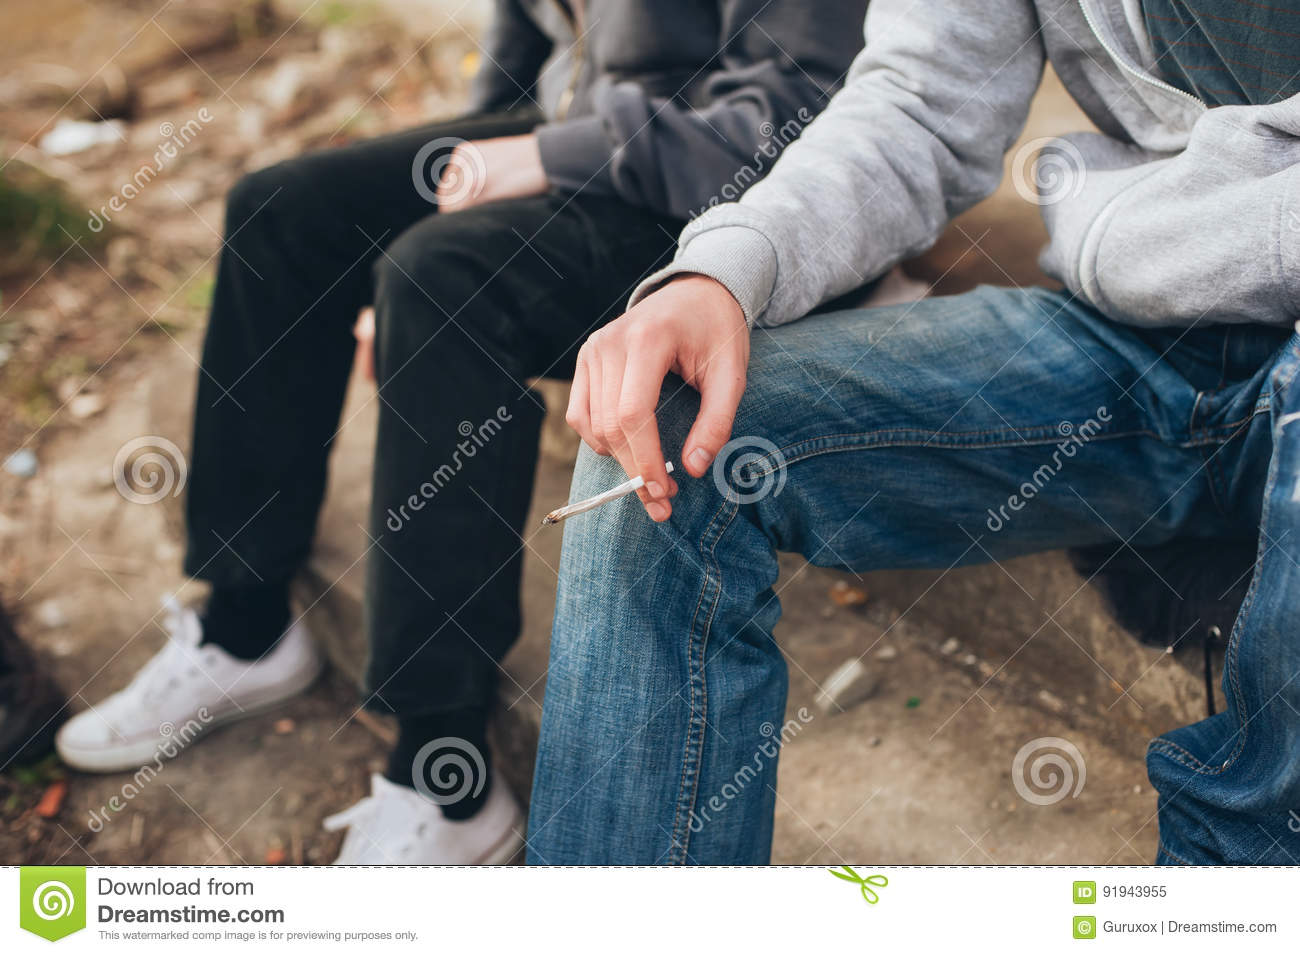 Two friends smoking joint in abandoned ghetto part of city